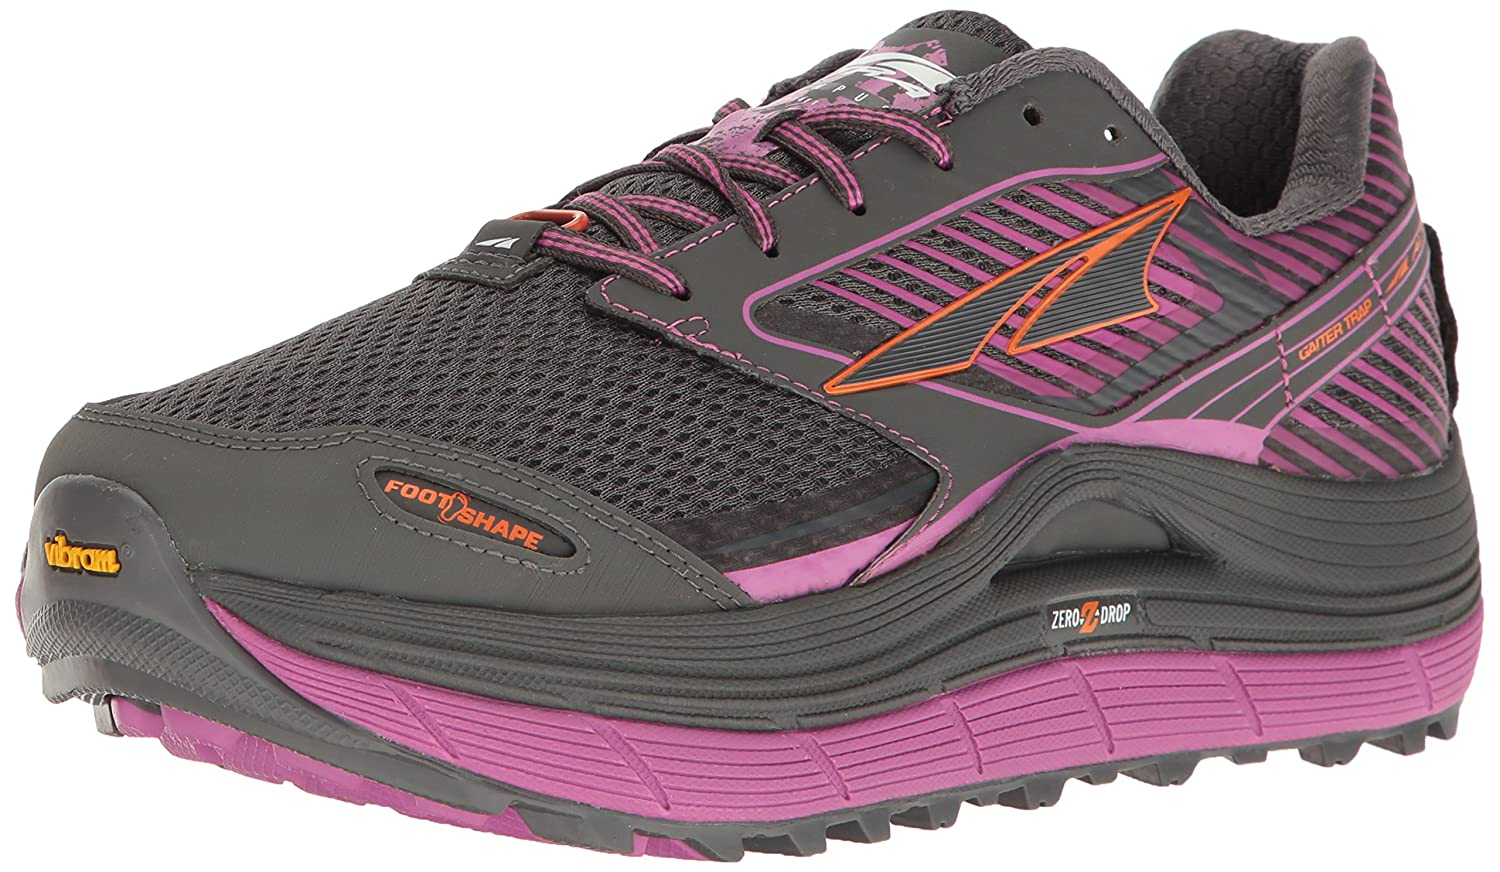 Altra Women's Olympus 2.5 Trail Running Shoe B01MRZVSOE 6 B(M) US|Purple